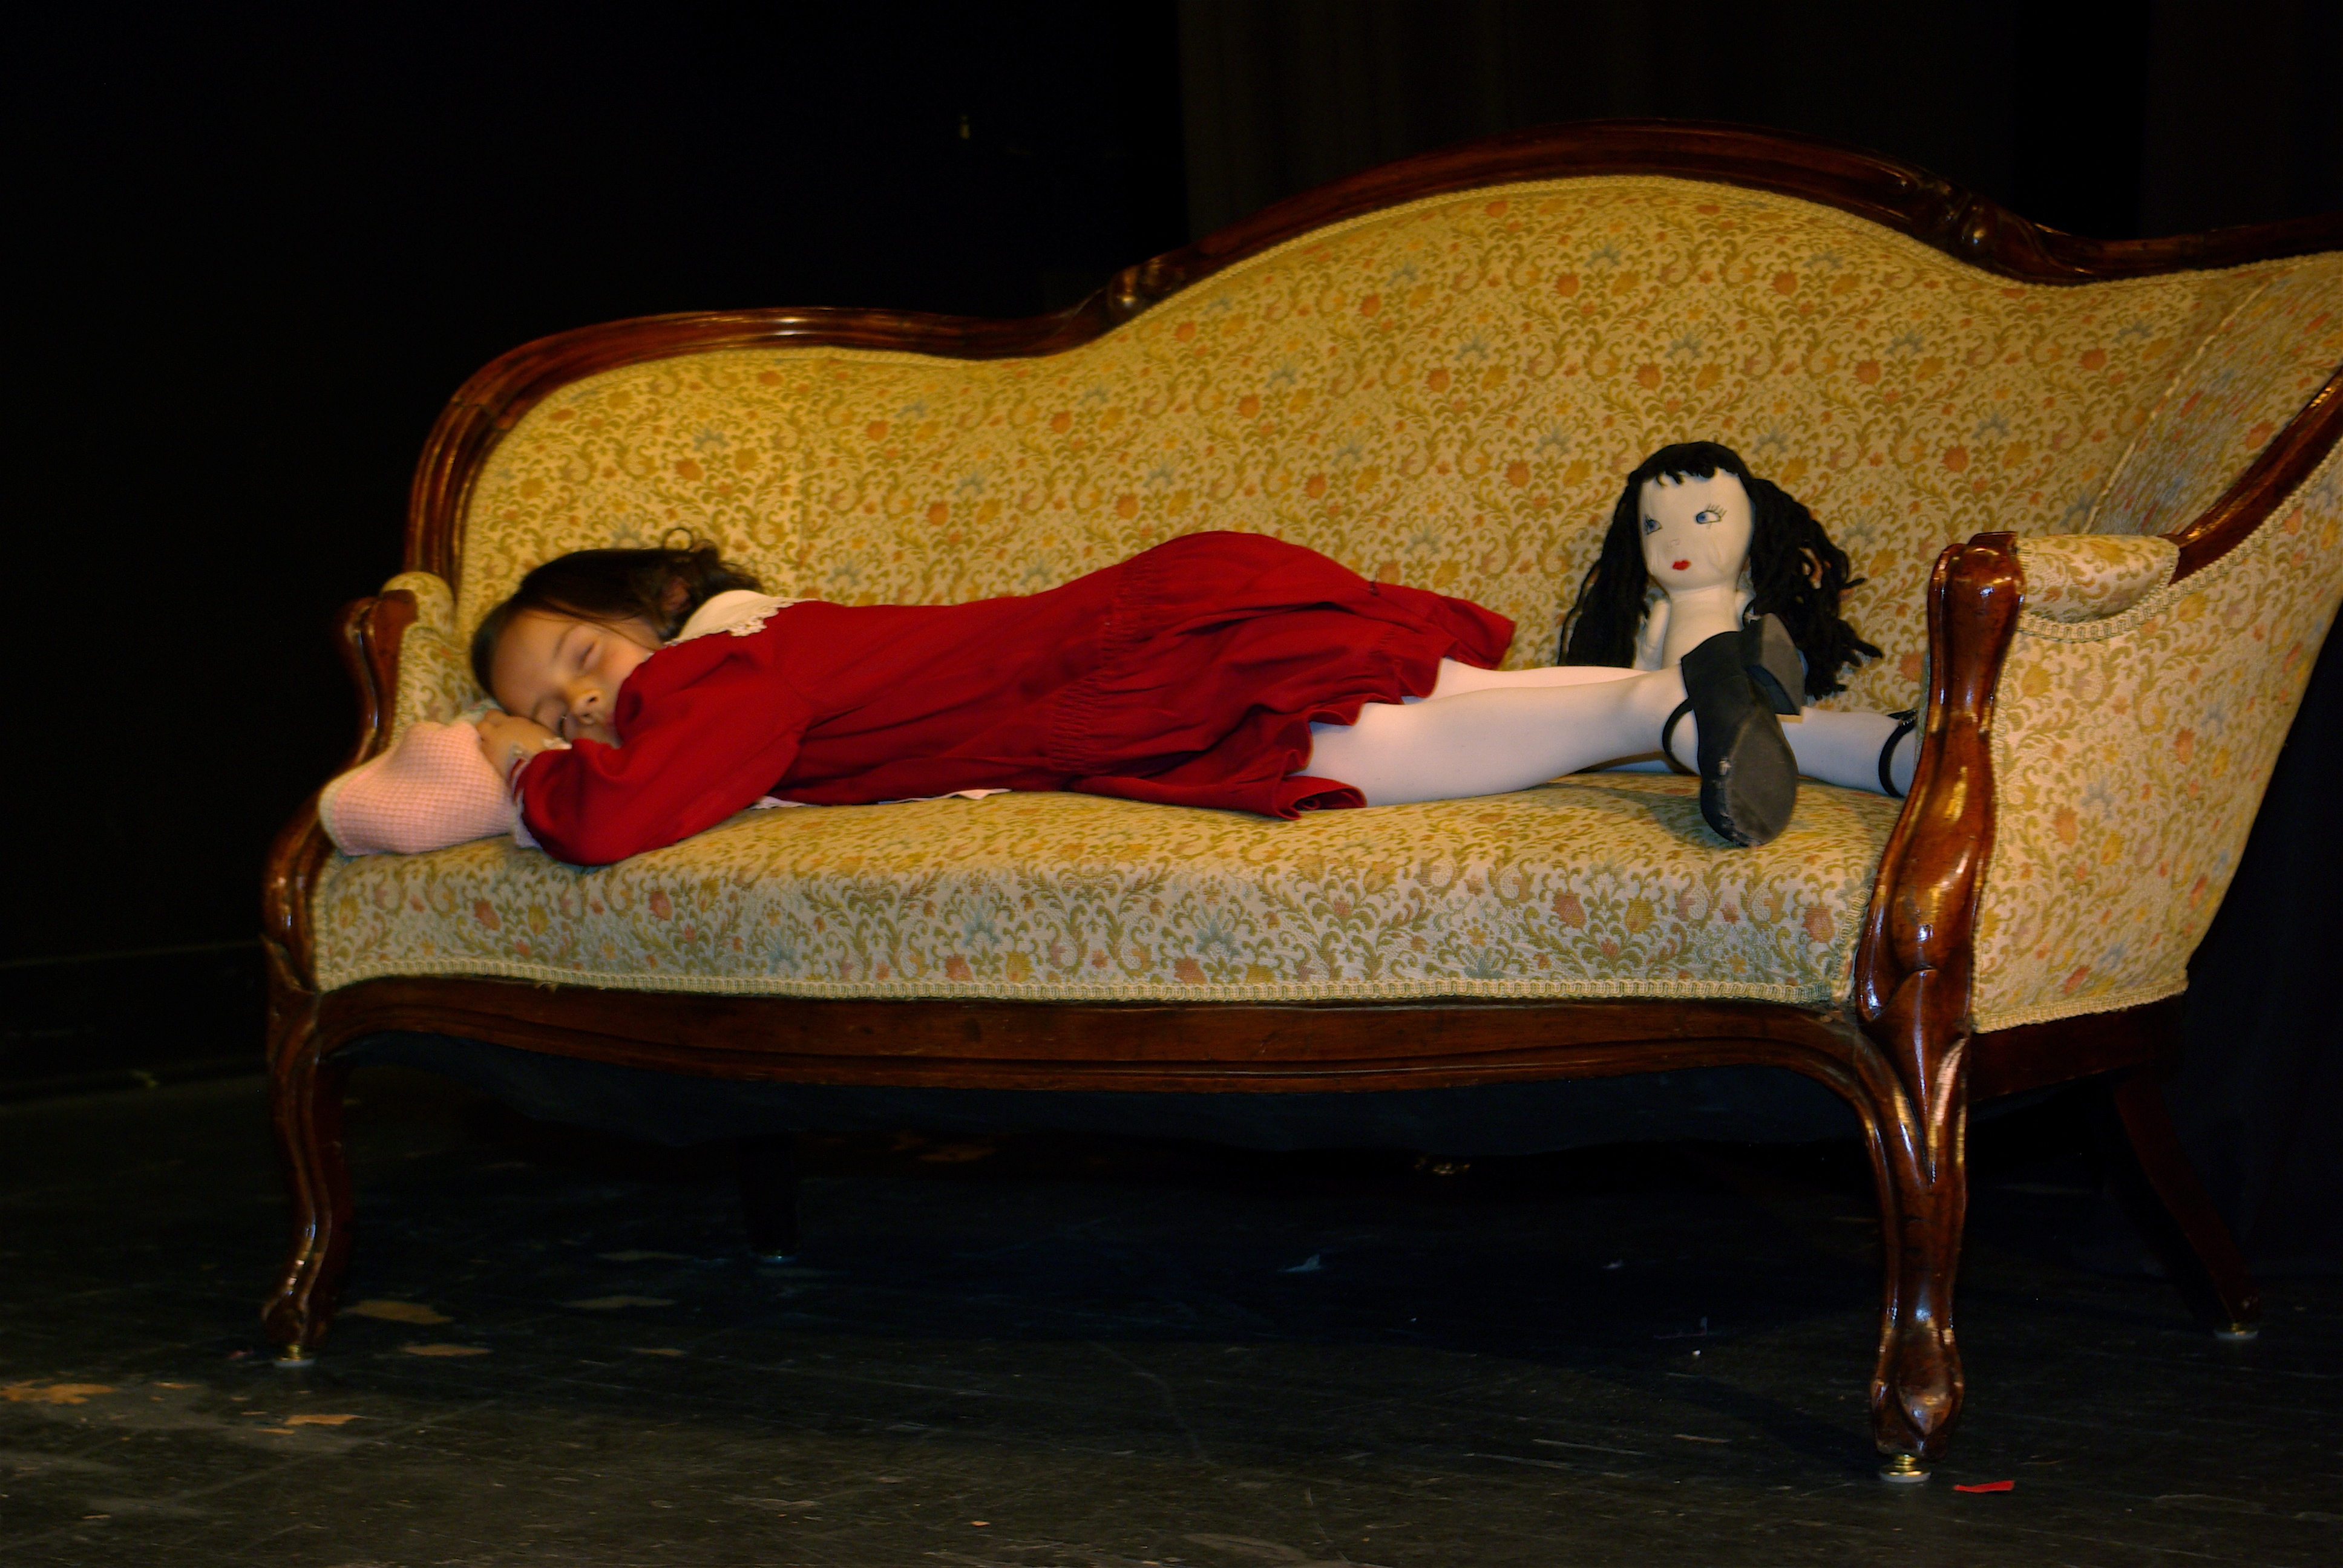 Jenny on couch with doll